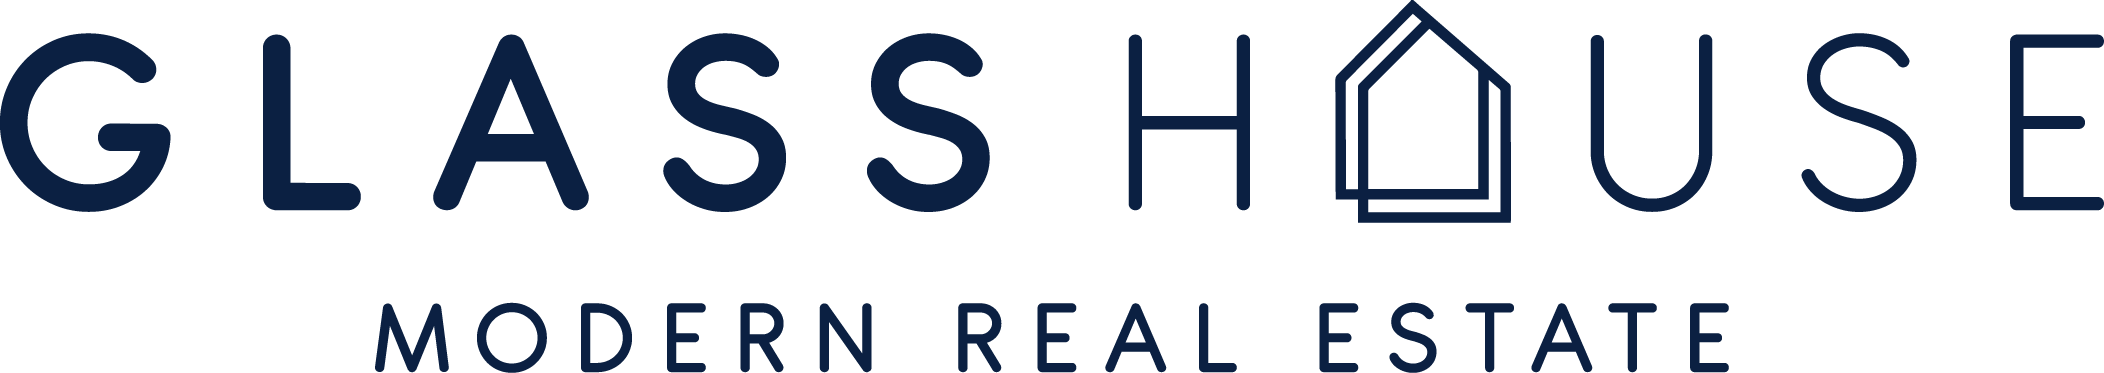 GLASS HOUSE LOGO - REVISION - RGB.png